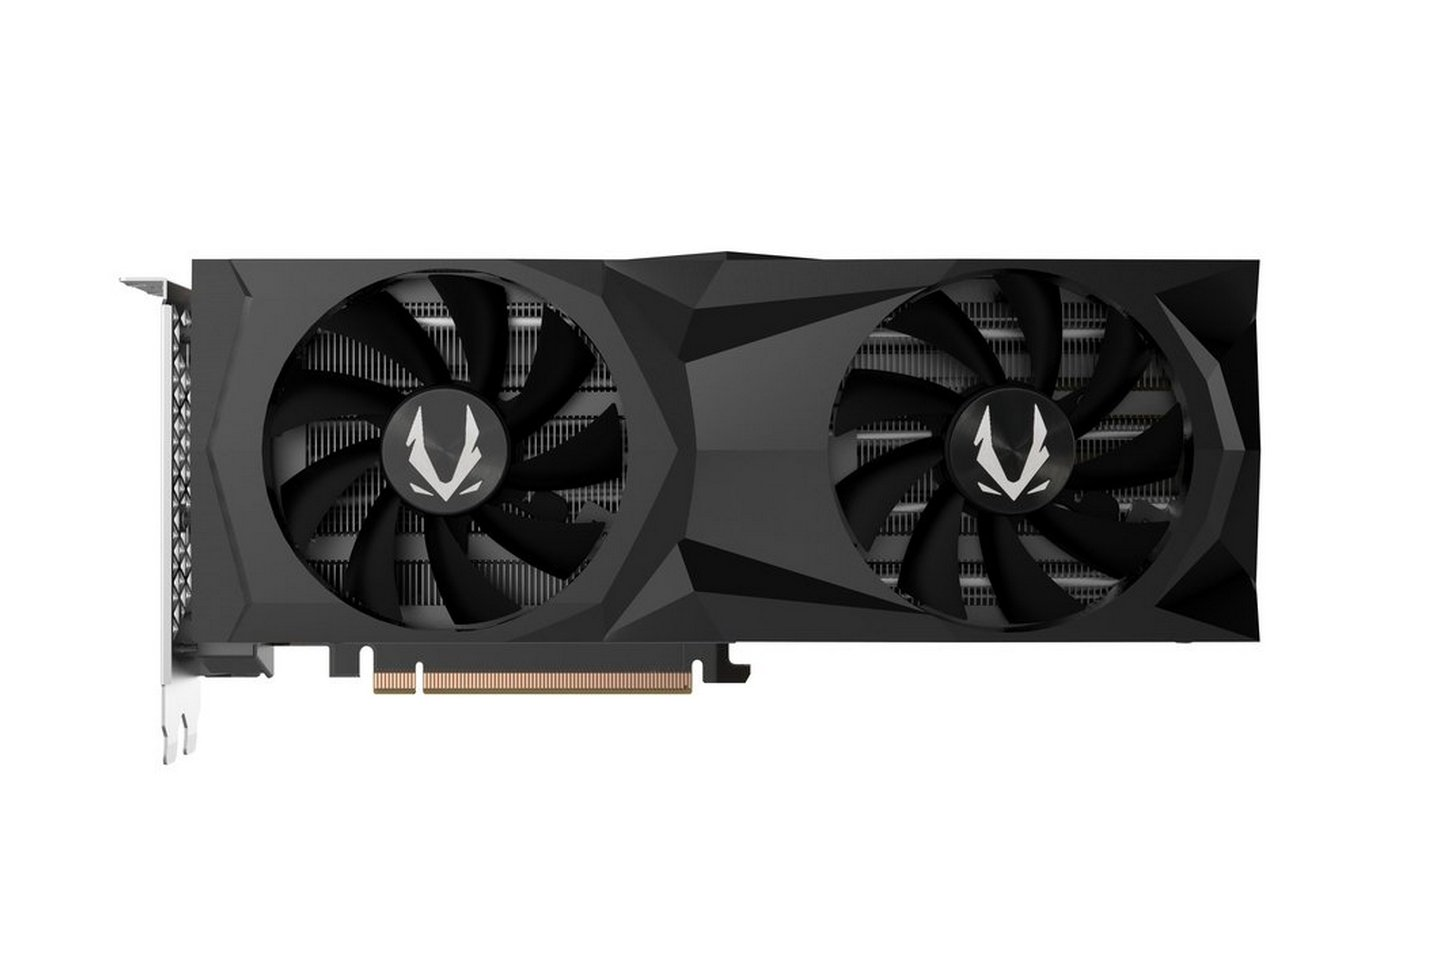 VGA ZOTAC GAMING GEFORCE RTX 2070 SUPER AMP